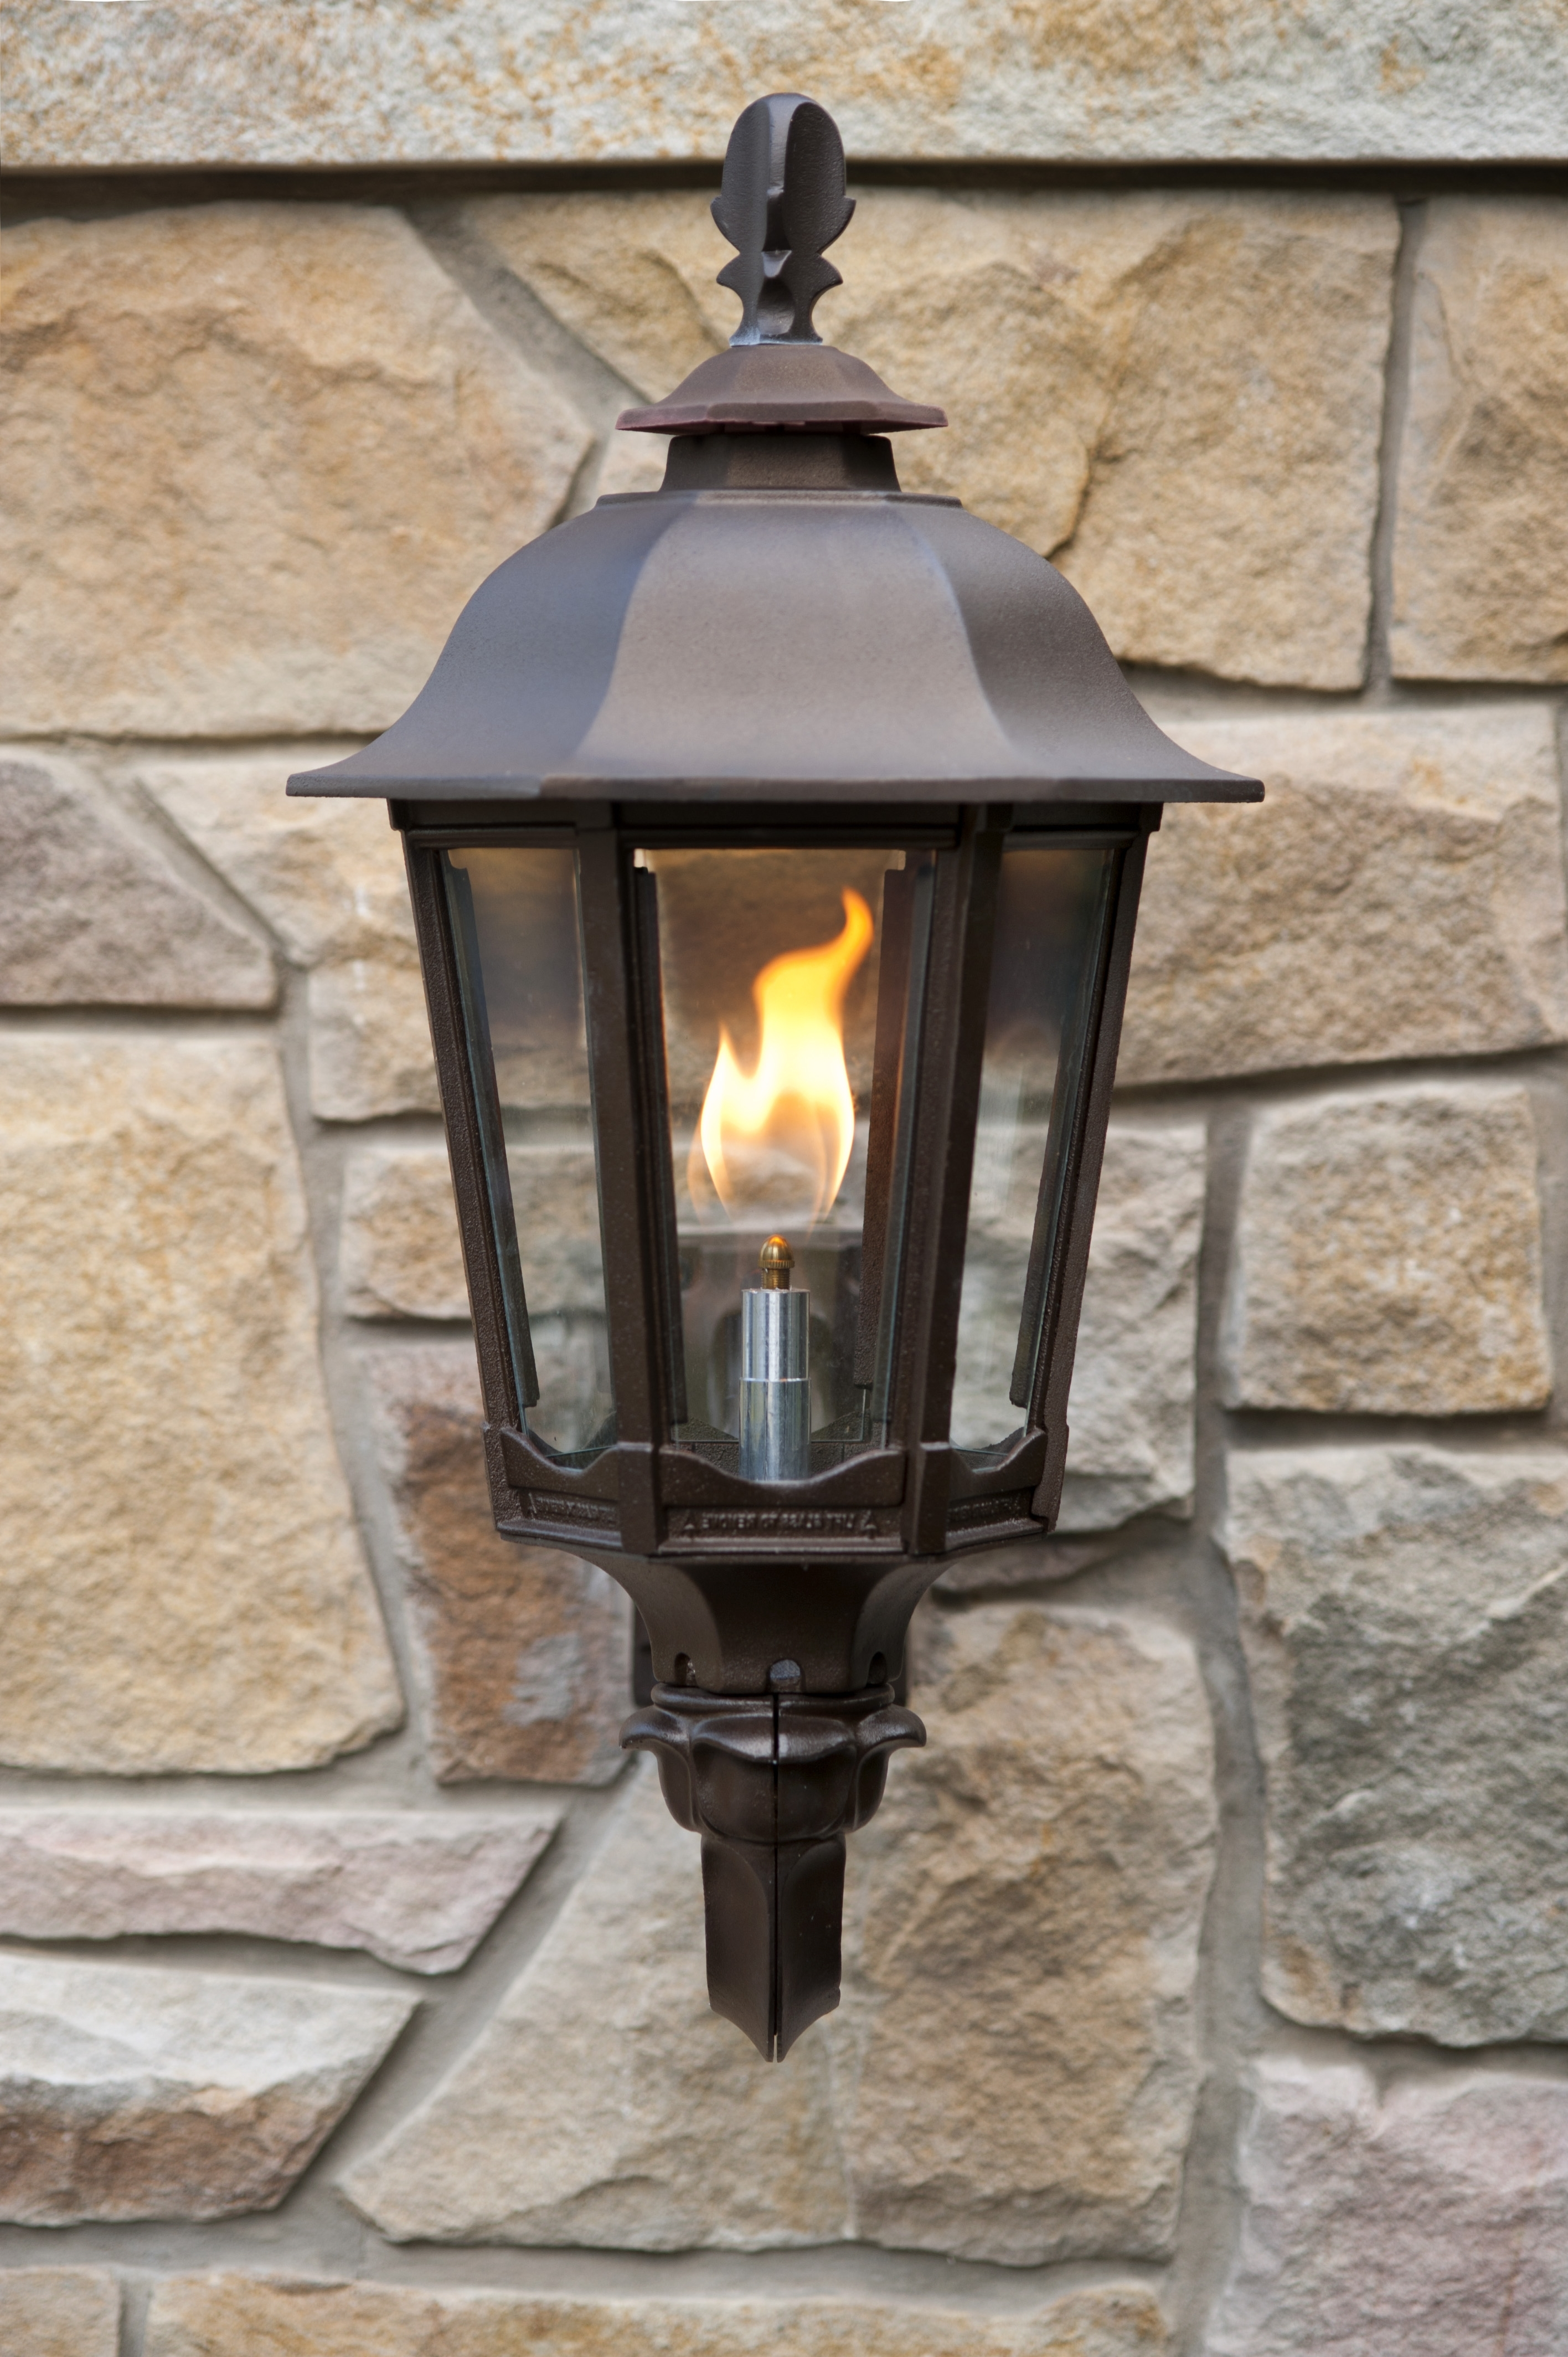 2019 Outdoor Wall Gas Lights In Sumptuous Design Gas Light Fixtures Amazing Ideas Wall Mounted (Gallery 9 of 20)